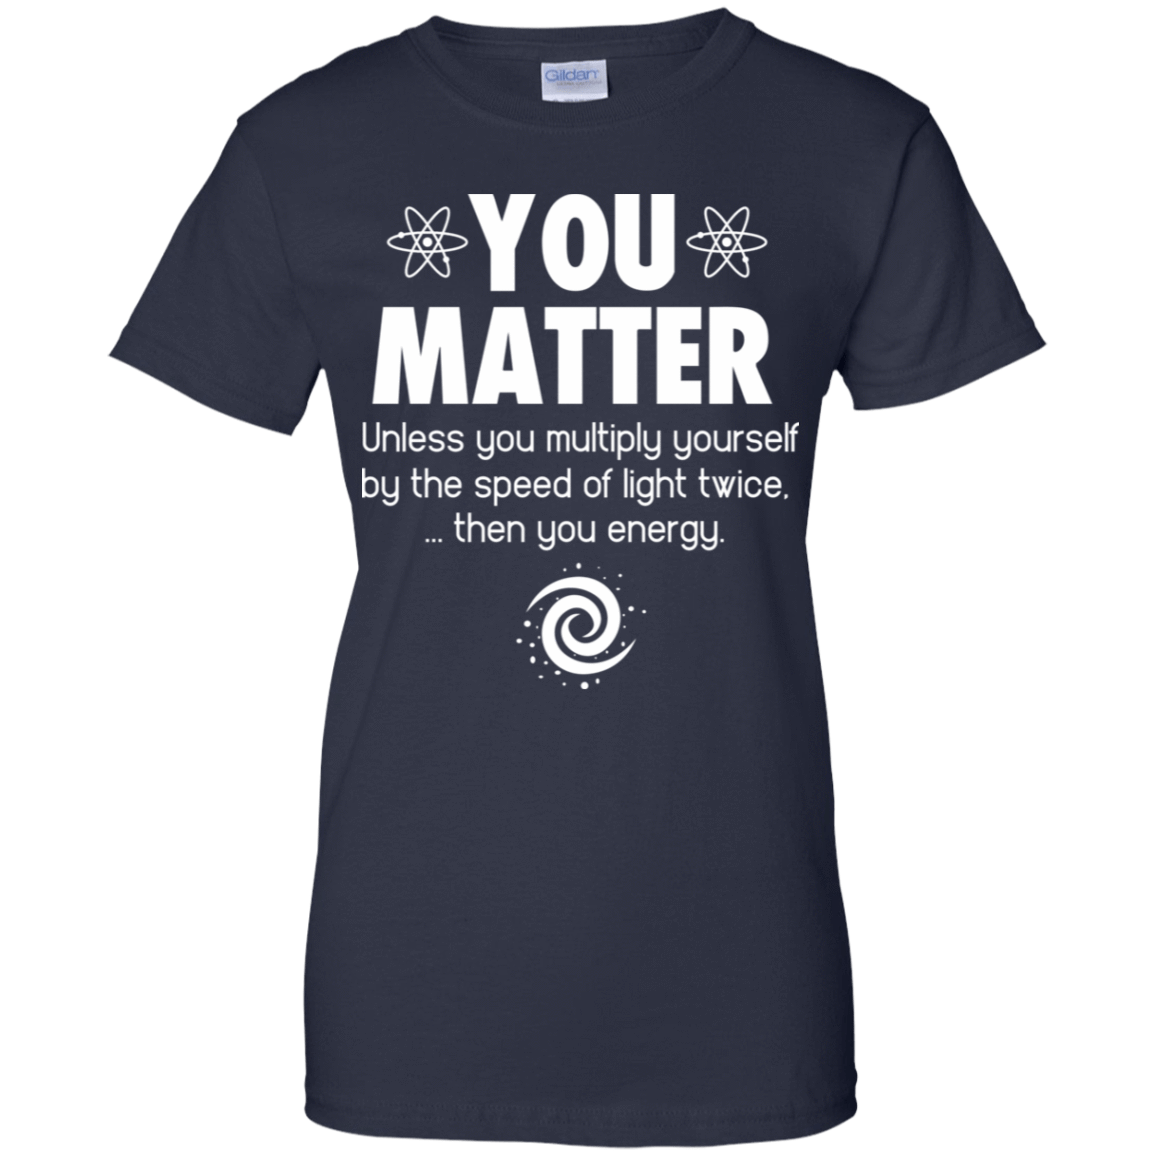 You Matter. Until You Multiply Yourself By The Speed Of Light Twice 939-9259-72771877-44765 - Tee Ript